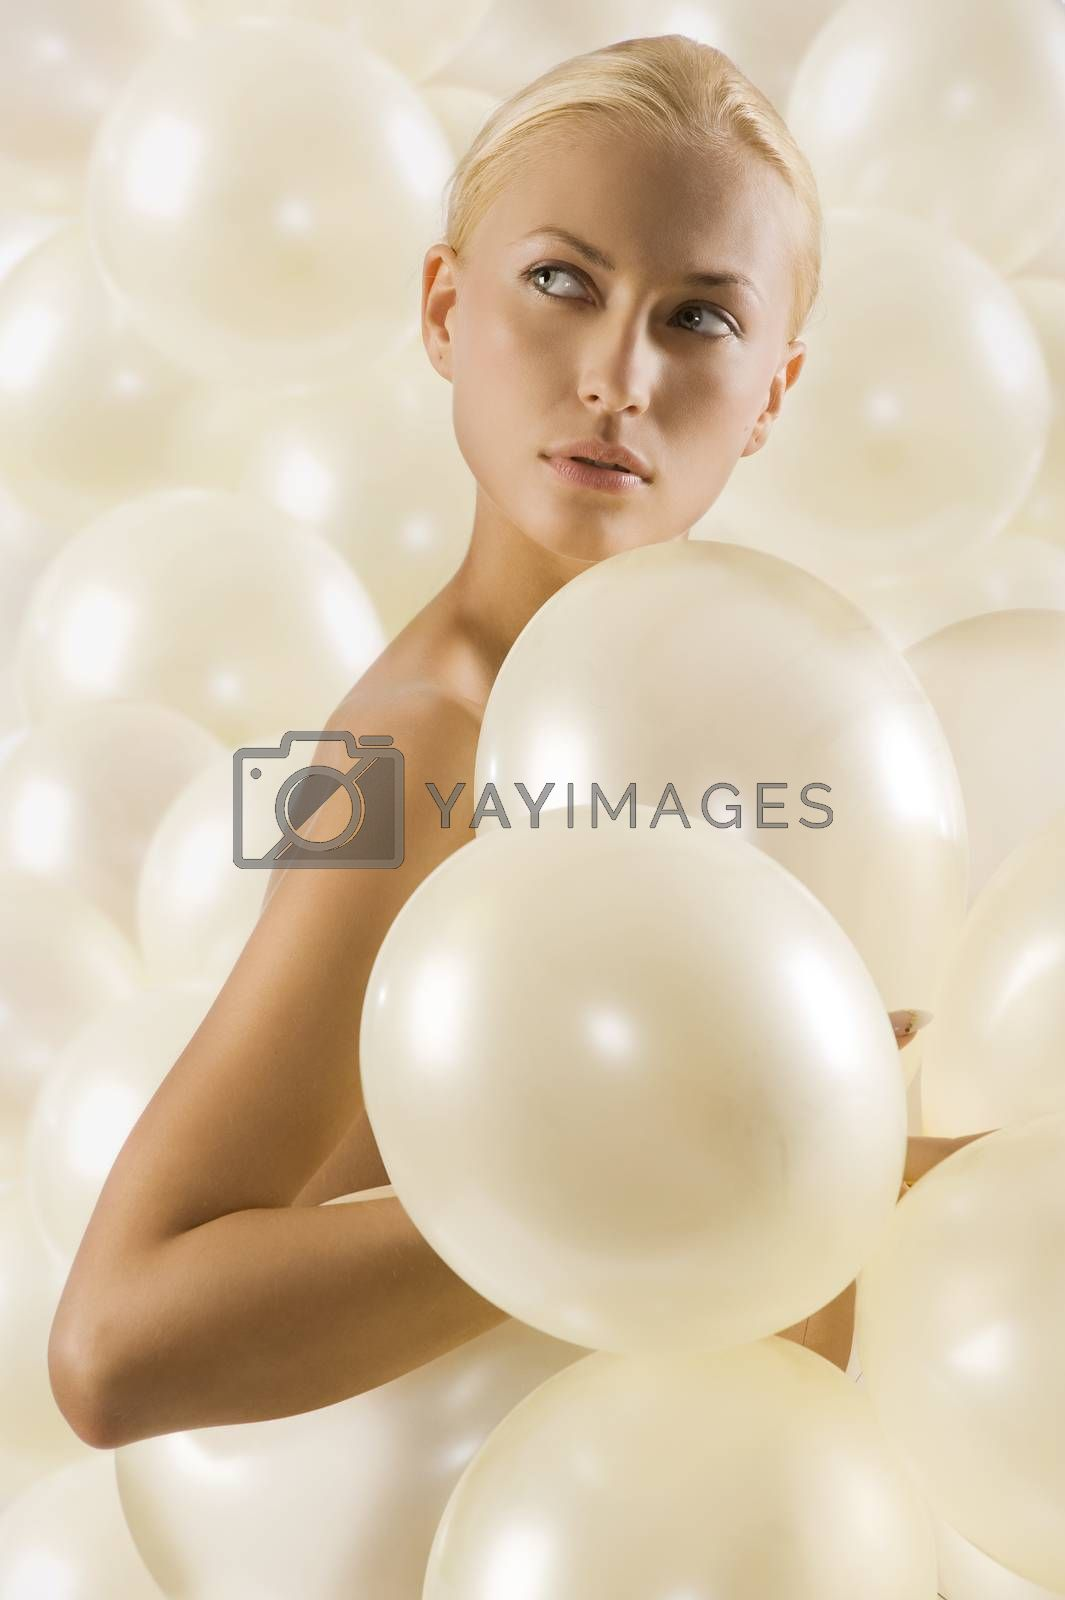 Royalty free image of portrait with balloons by fotoCD